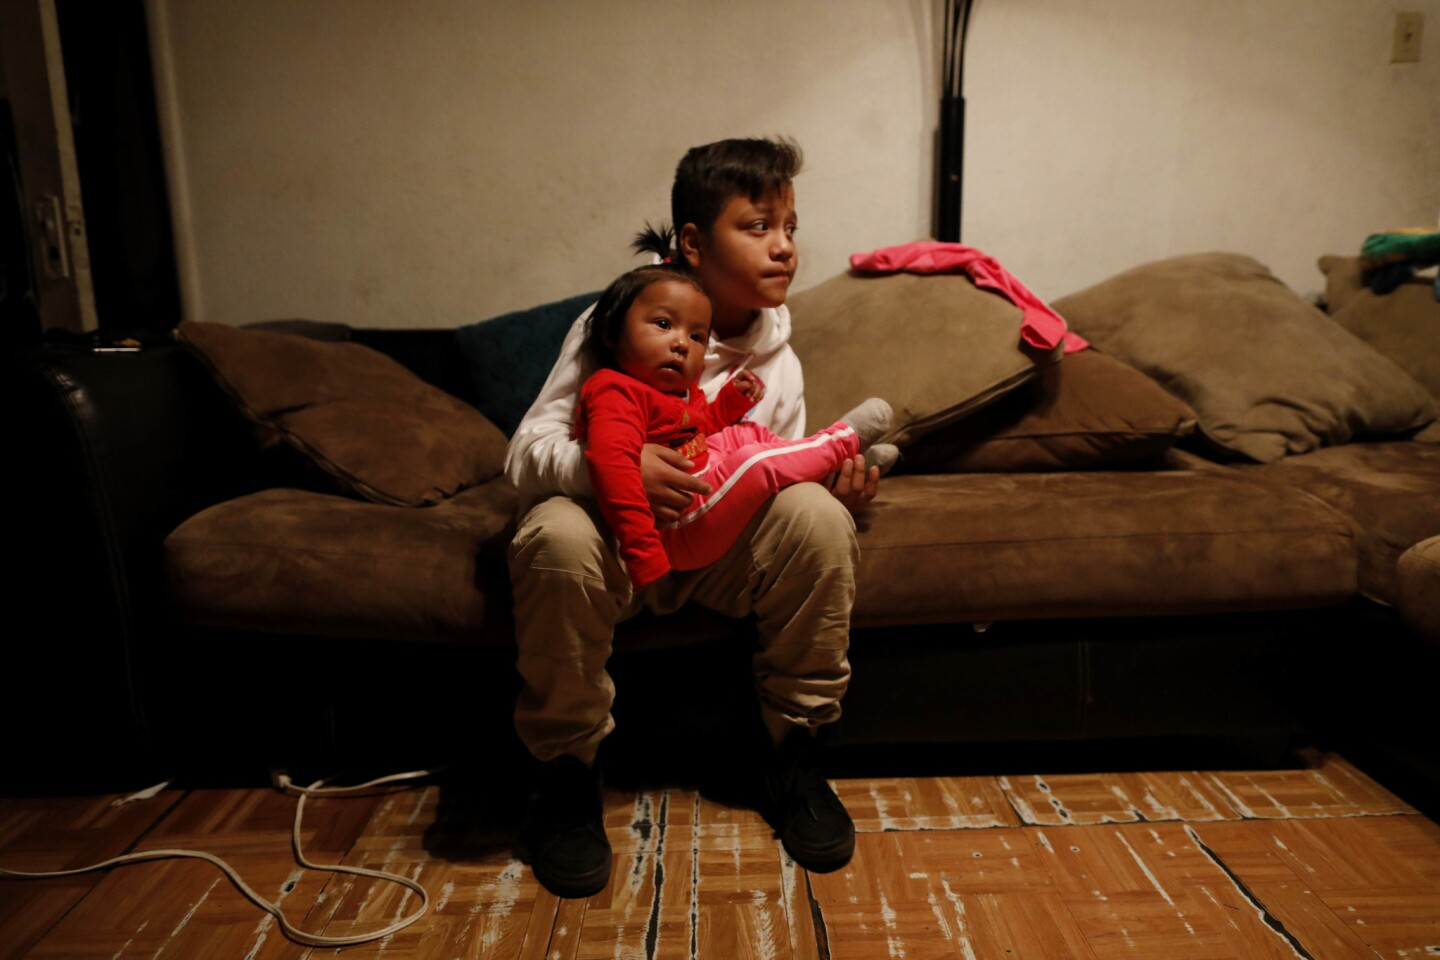 Angel Flores, 11, a fifth-grader at Trinity Elementary School, watches sister Kendy, 12 months, before heading to the picket line at his school. His mother, Kimberly Martinez, decided to keep her children out of school to support the strike.